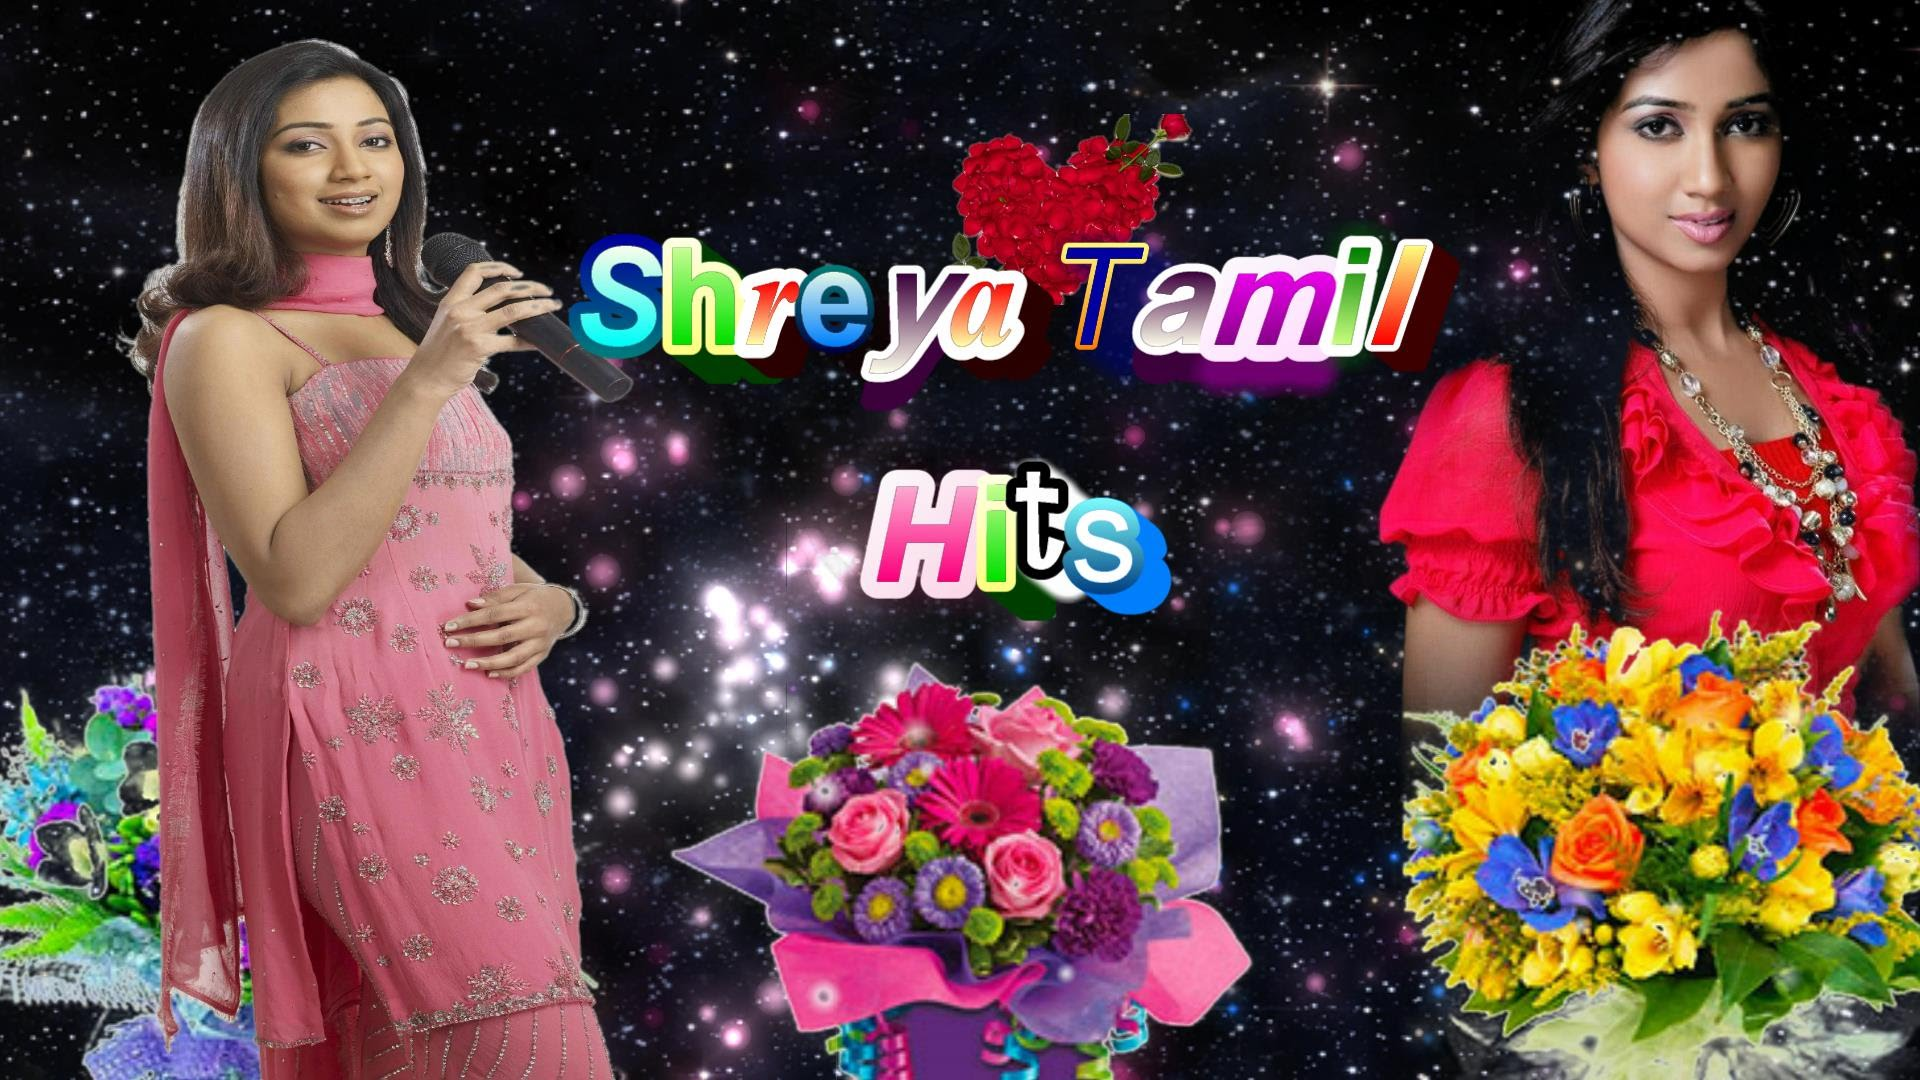 Shreya Ghoshal Tamil mp3 songs,Shreya Ghoshal hits,Shreya Ghoshal songs download,Shreya Ghoshal hd hits Tamil mp3 songs Online,shreya ghoshal songs tamil,shreya ghoshal tamil songs download,shraya goshal tamil mp3 songs download,tamil mp3 […]